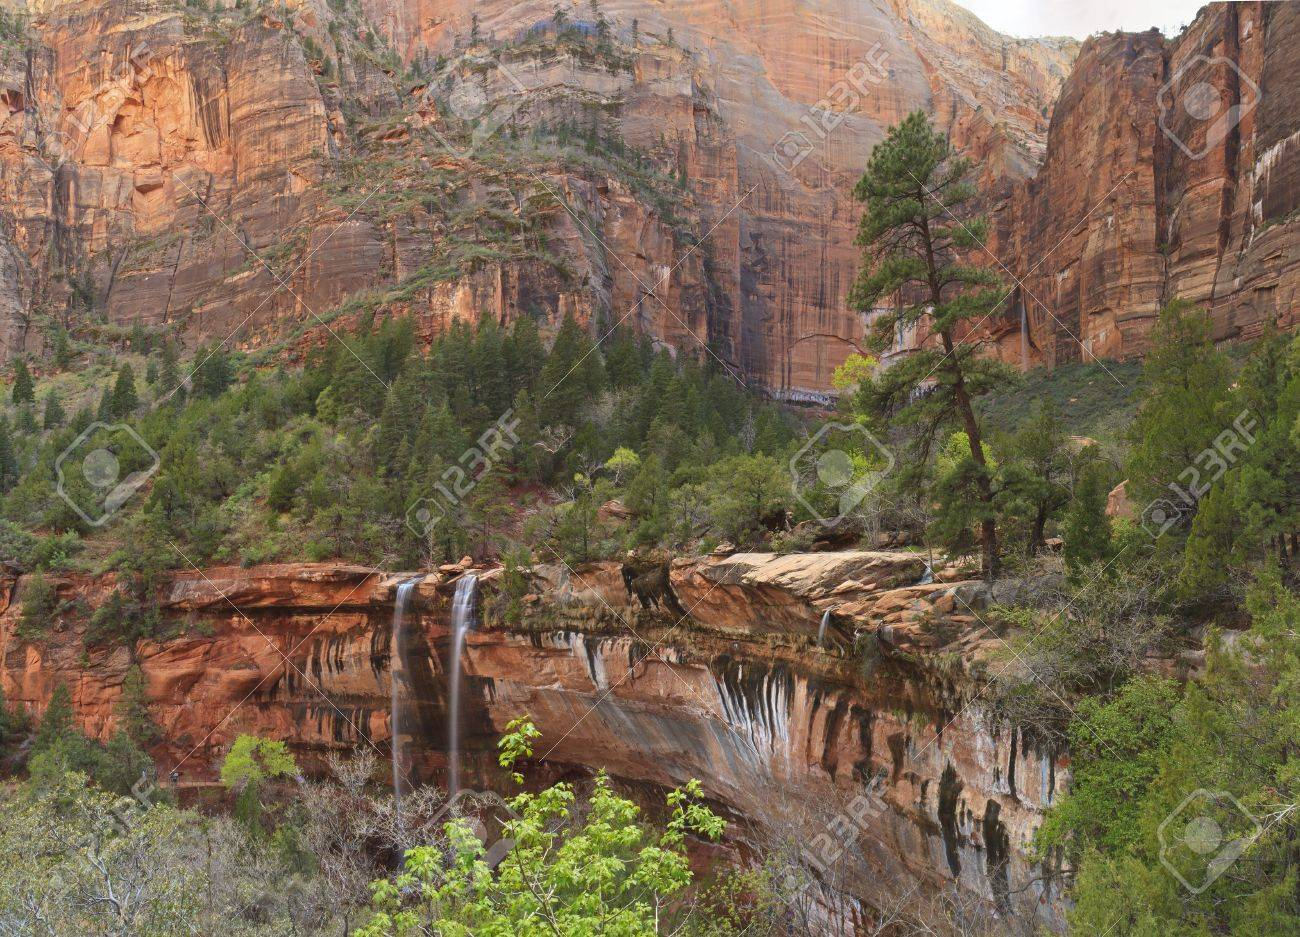 Water falls from a forested canyon over a red cliff at Emerald Pools in Zion National Park, Utah - 13573421